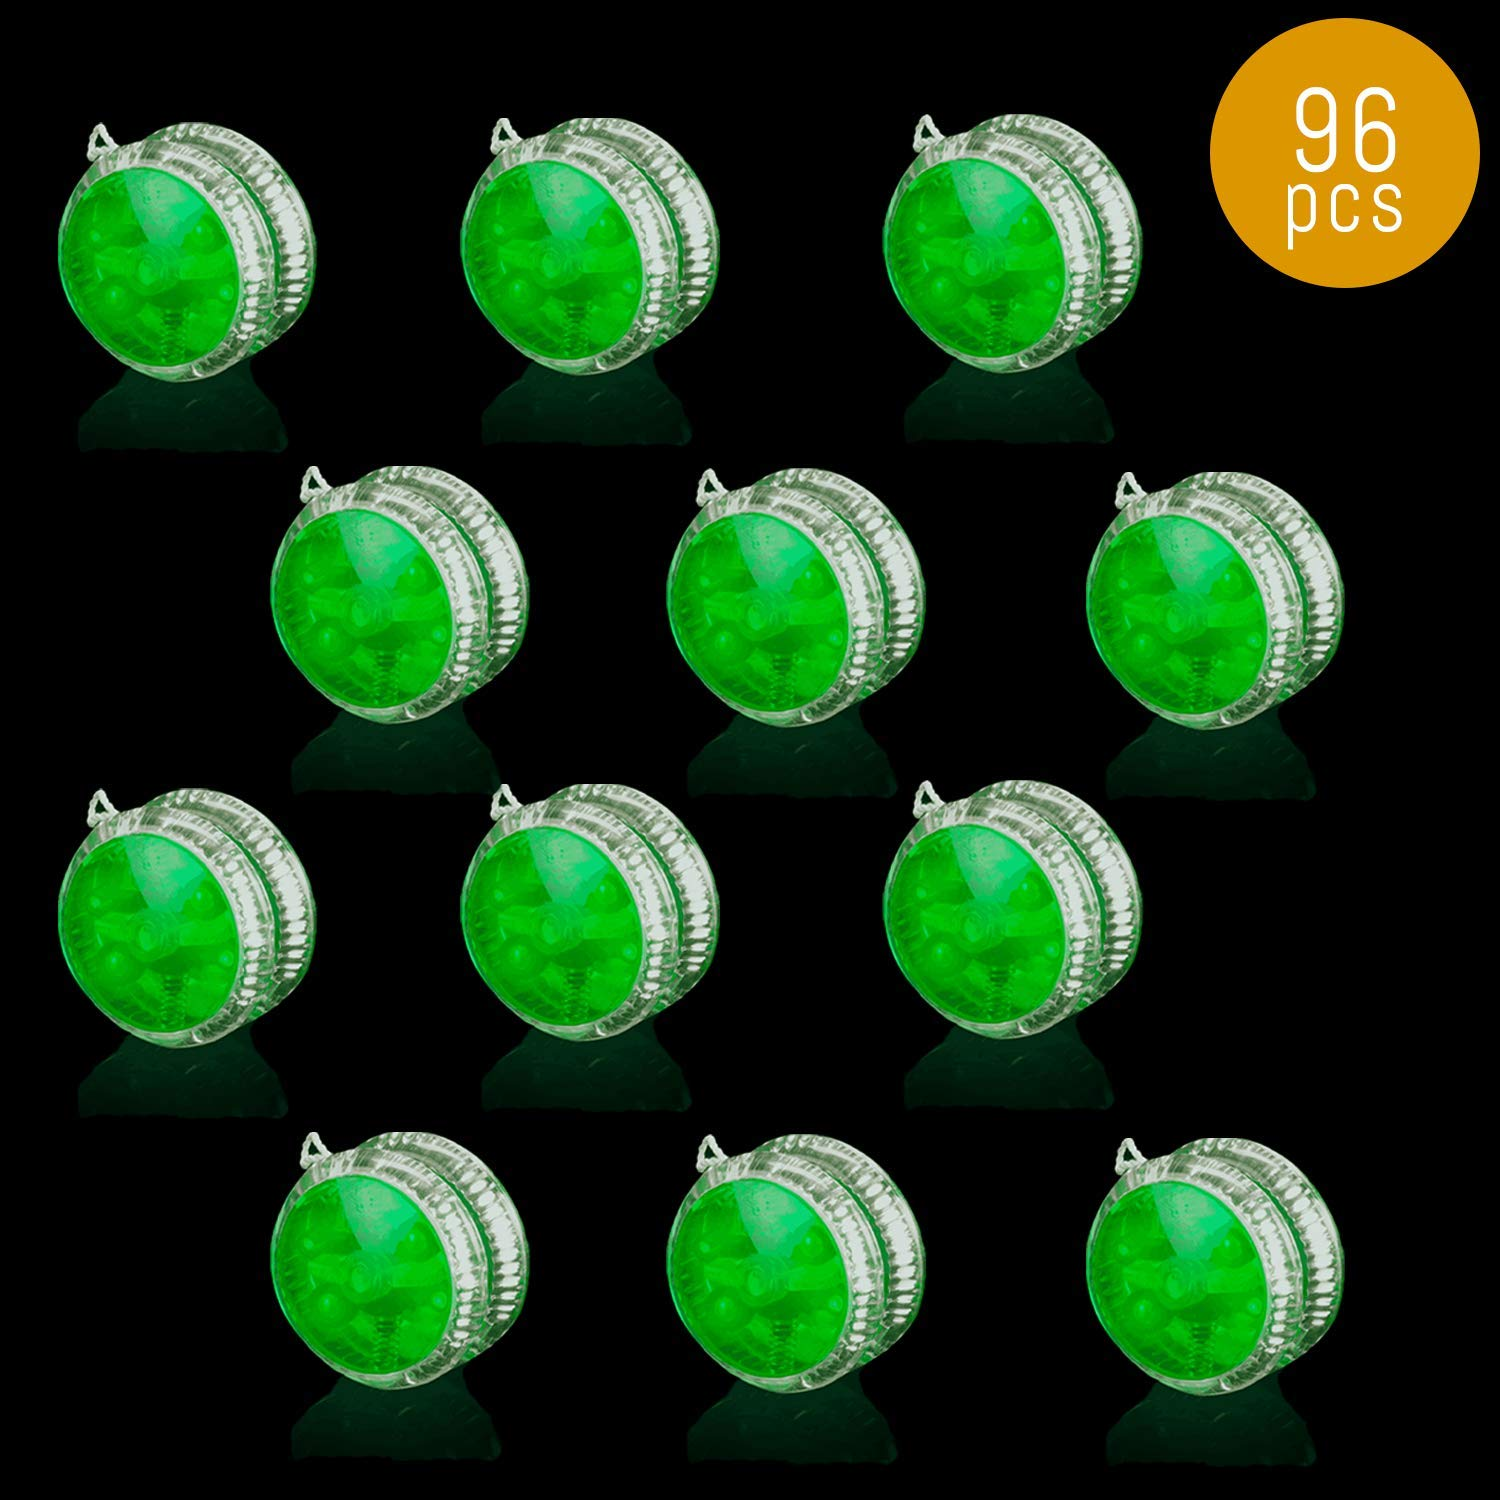 Lumistick LED Yo-Yo Ball | Peace Sign Flashing Spinning Light-up Hand Exercise Therapy Bright Colors Ball Night Festival Parties Glowing Toy (Green, 96 Yo-Yo Balls)